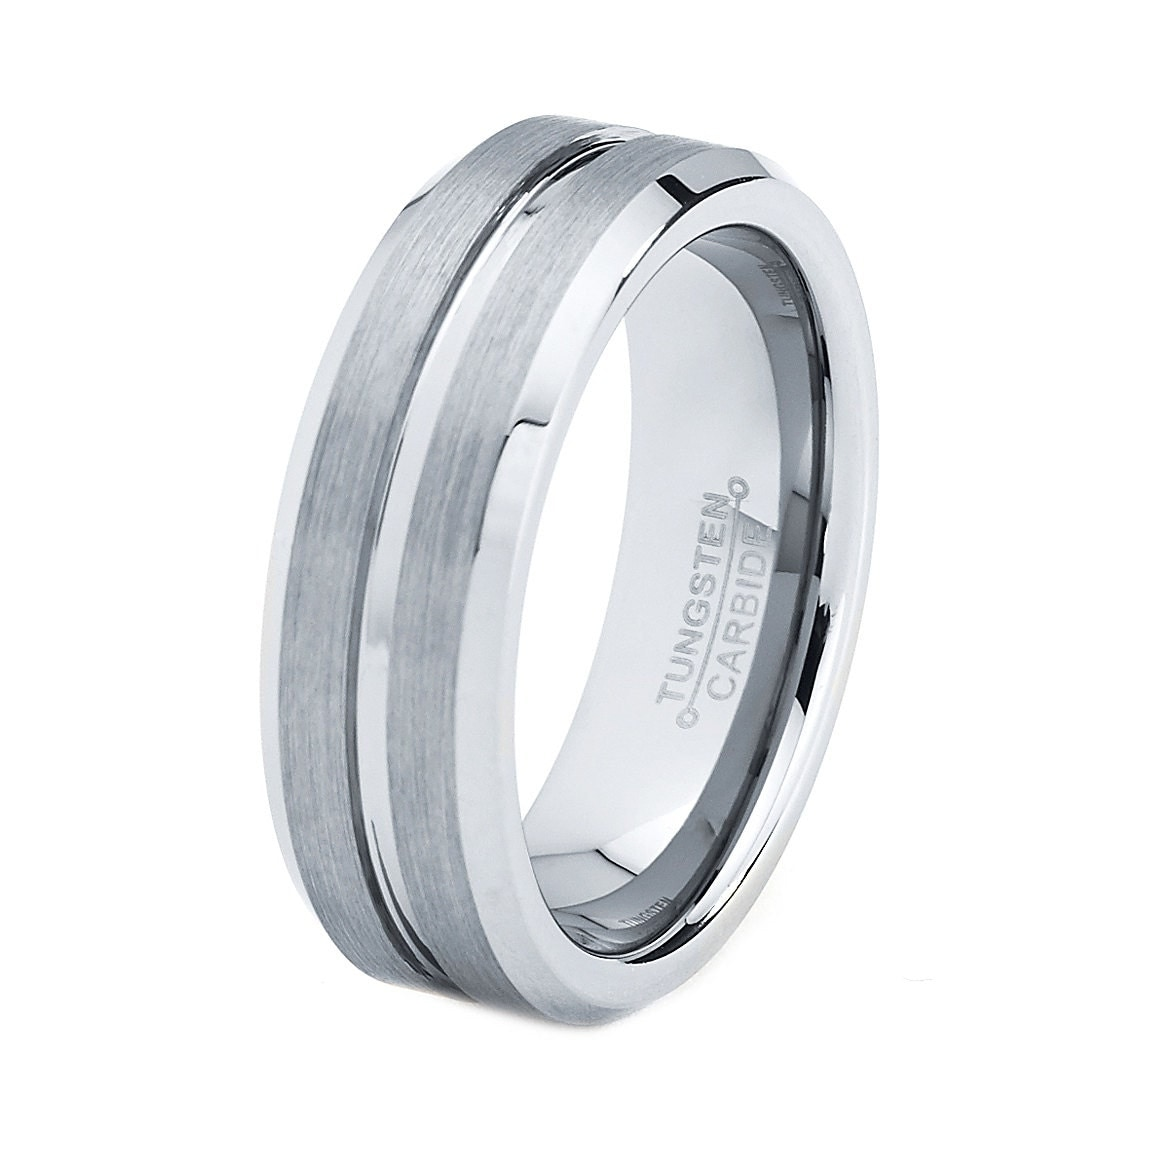 unavailable listing on etsy On unique tungsten mens wedding bands